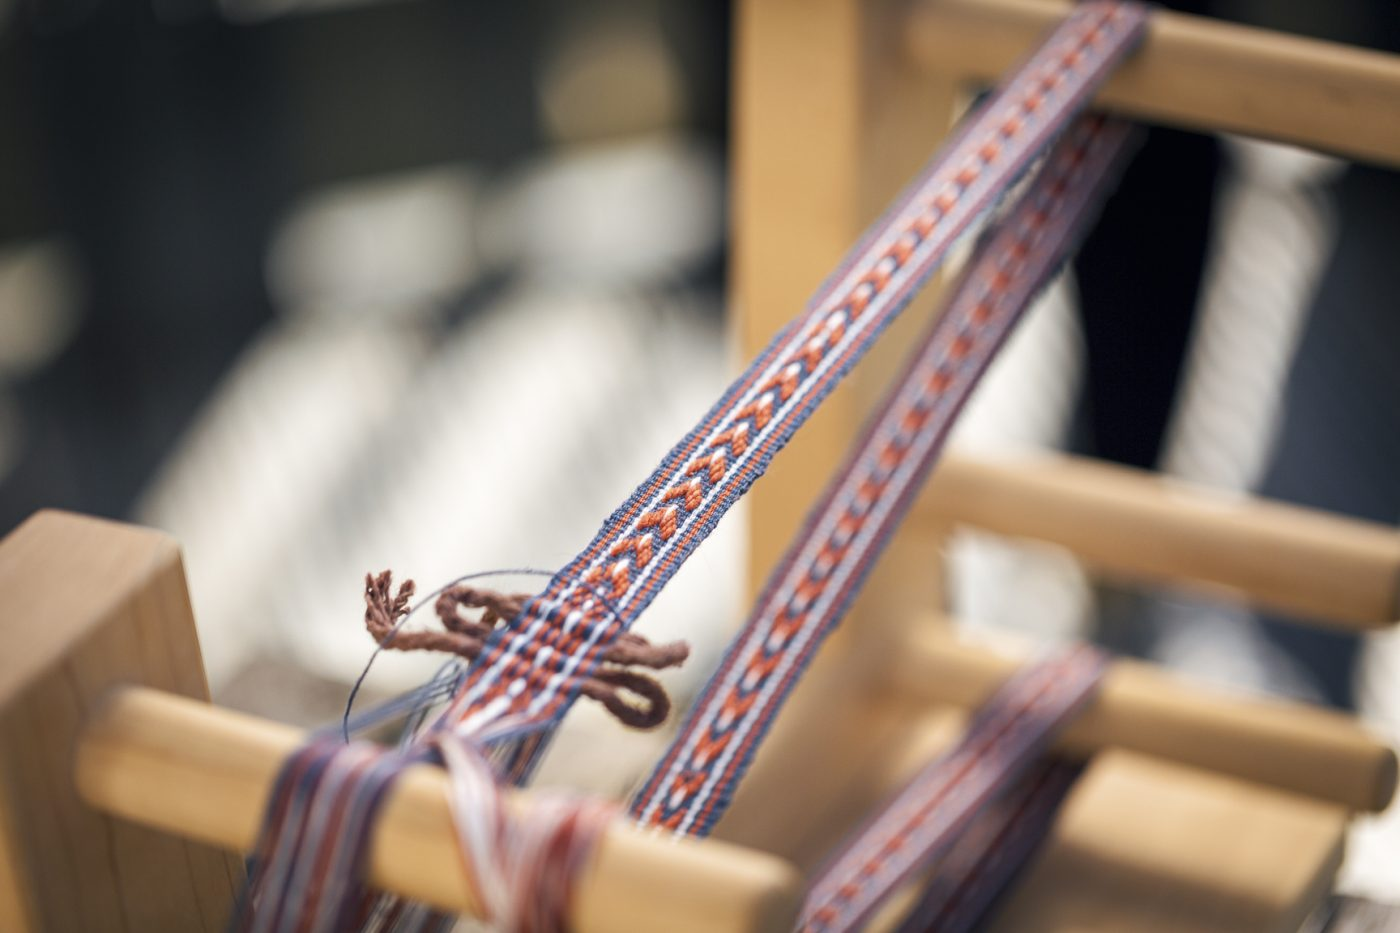 Thin band of blue, orange and white textile being woven on a loom